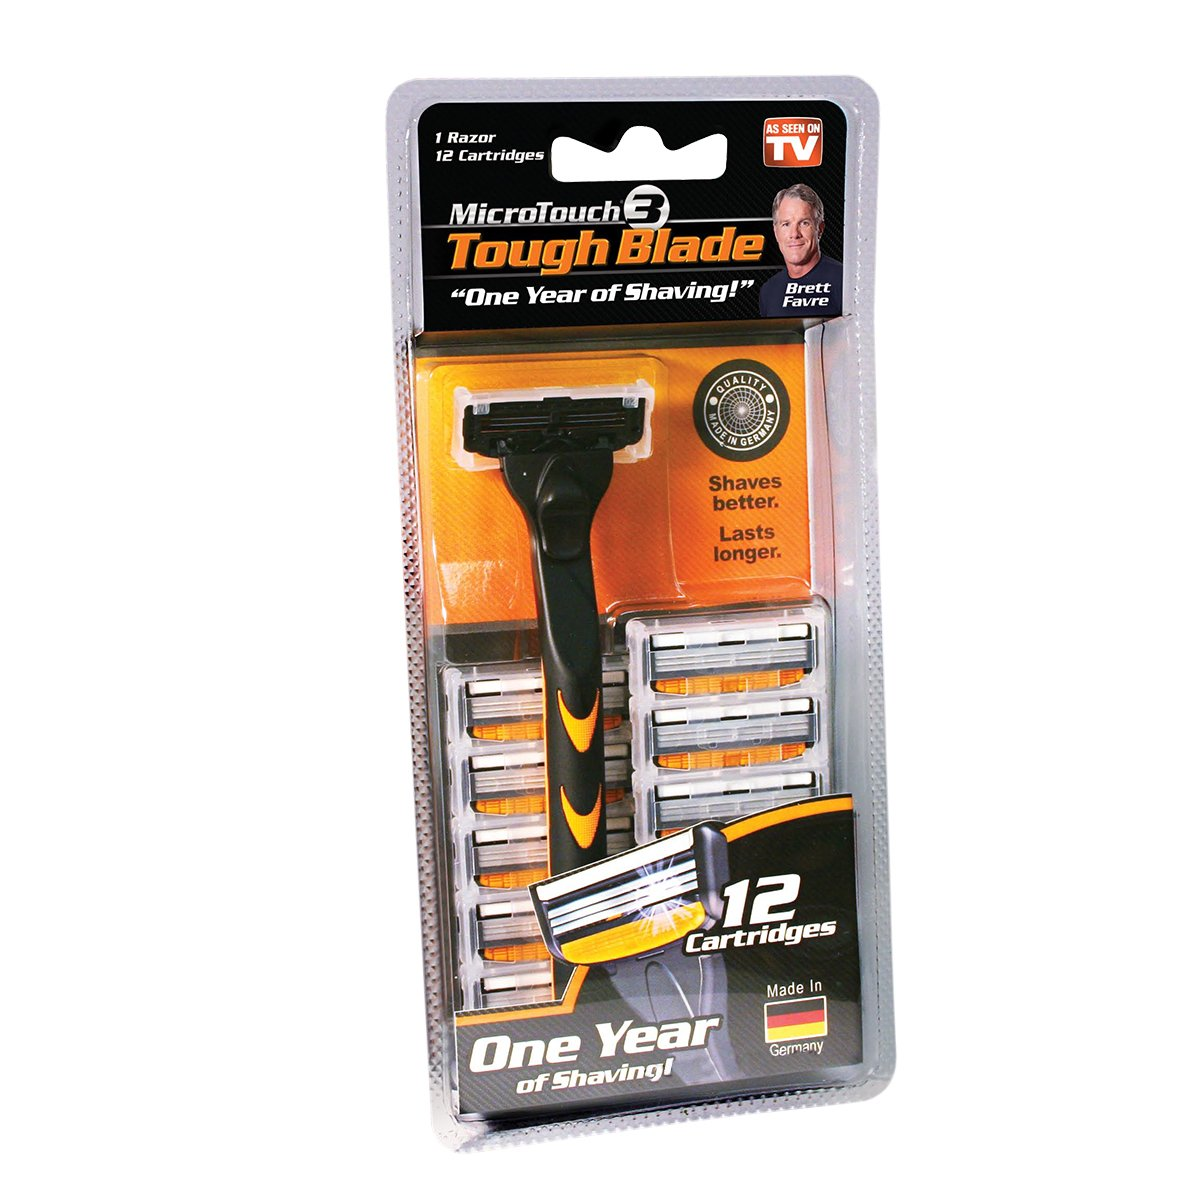 Micro Touch Triple-Blade Razor with 12 Refill Cartridges